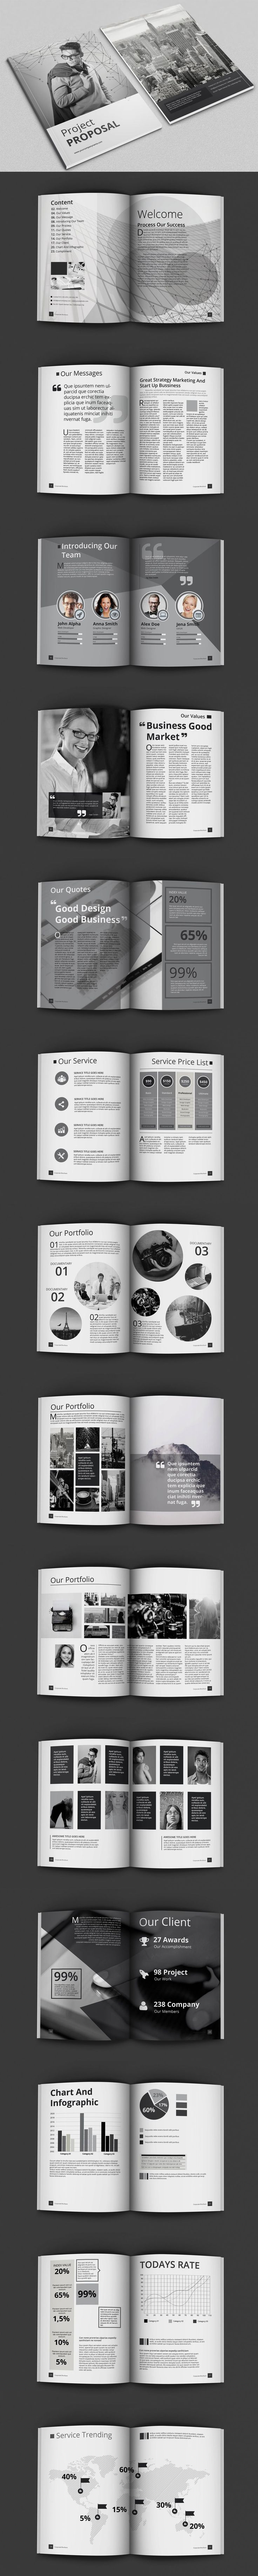 Black And White Proposal Project Template InDesign INDD - A4 And Letter Size